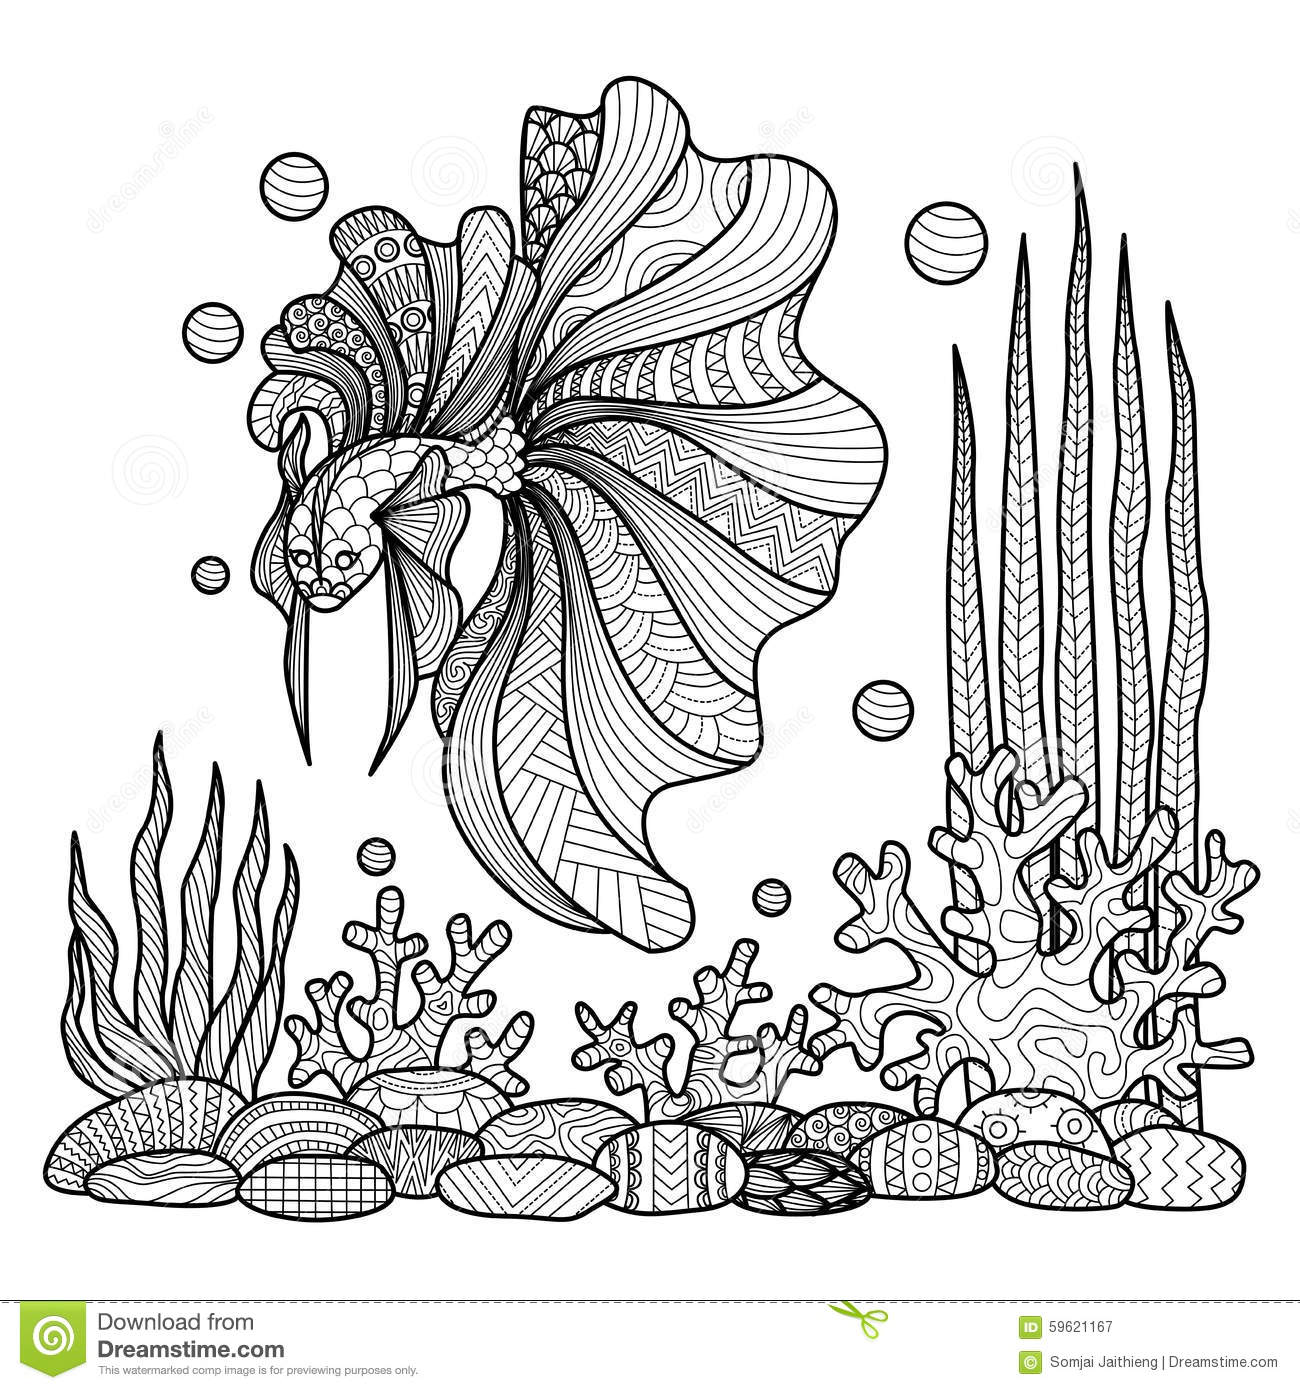 fighting fish drawing for coloring book  stock vector